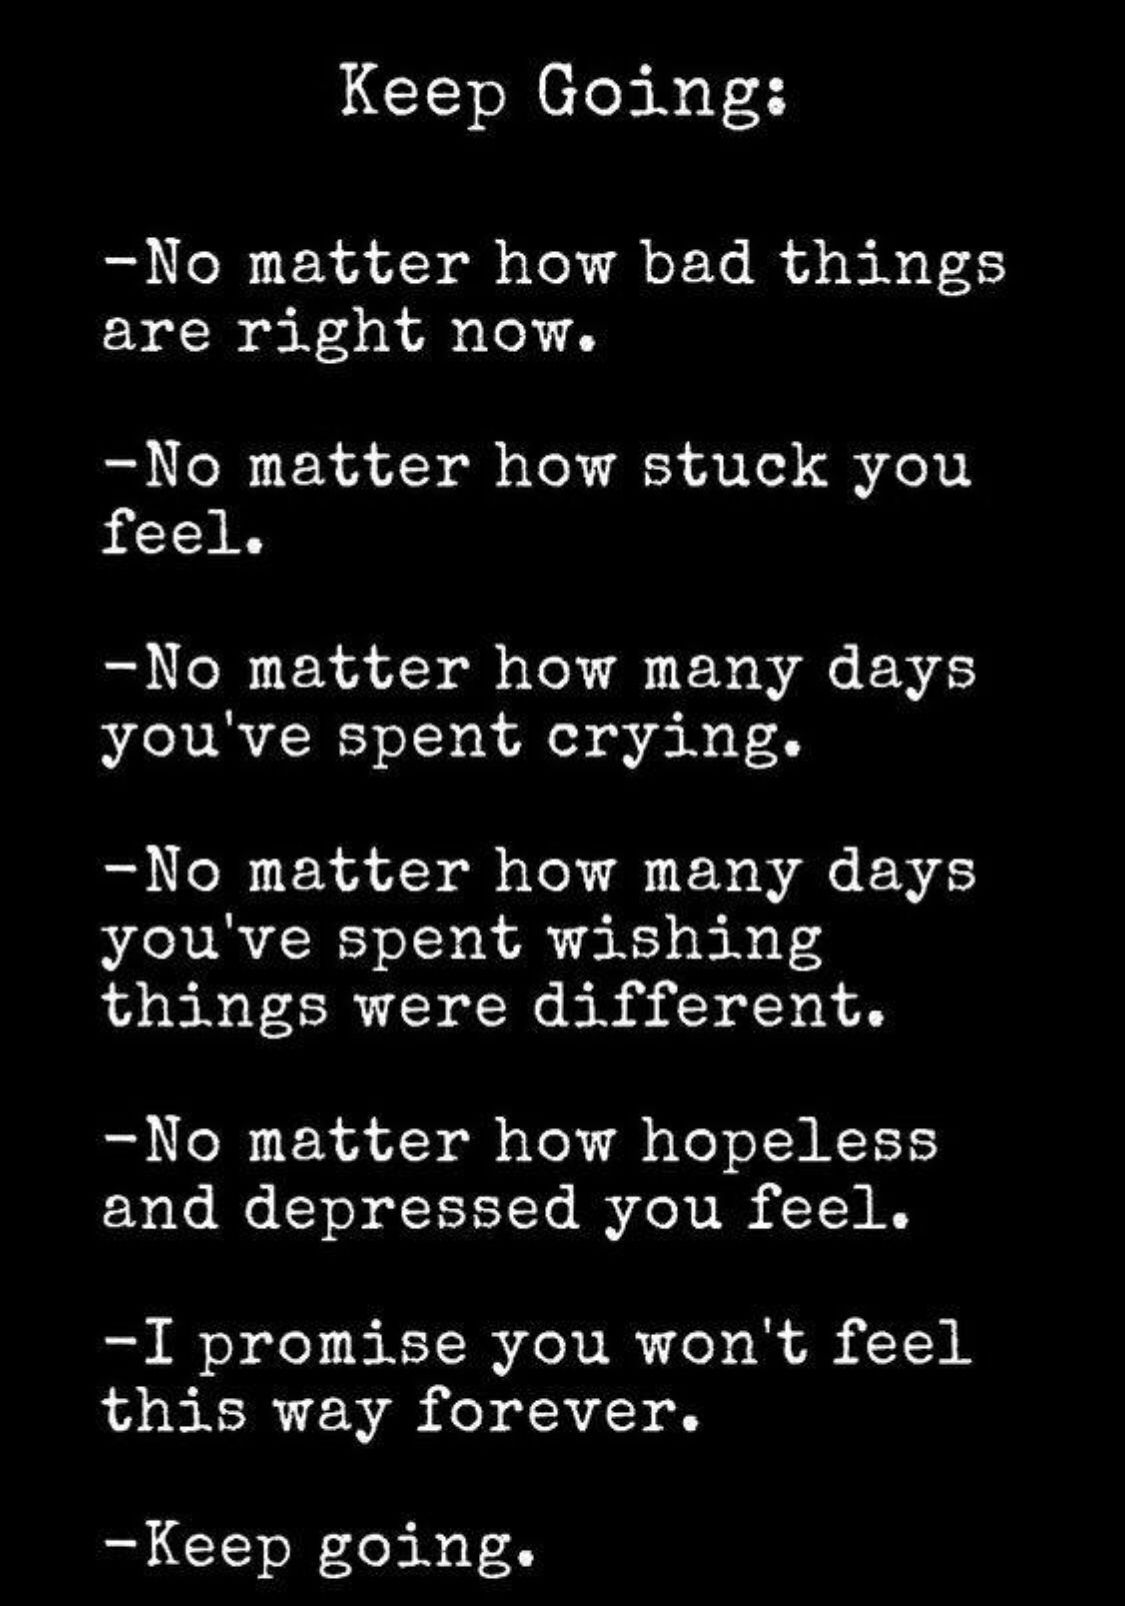 60 Inspirational Quotes To Keep Going Through Tough Times Keep Going Quotes Go For It Quotes Tough Times Quotes